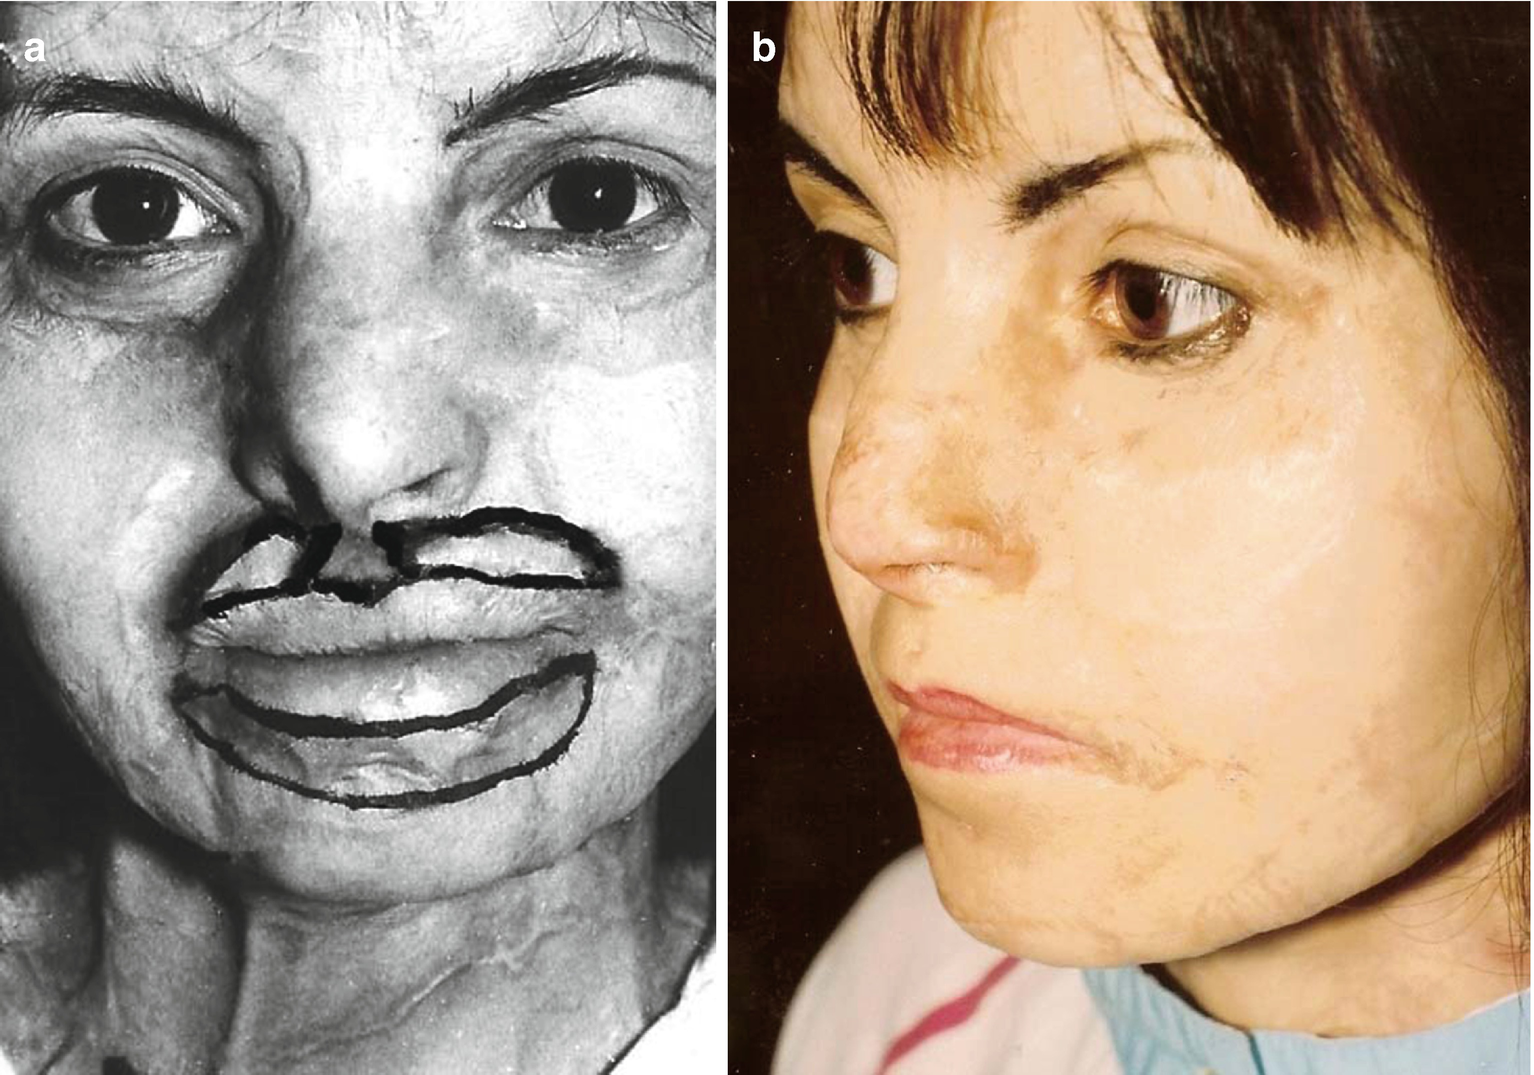 Single-Stage Upper Lip and Philtrum Reconstruction in Burned